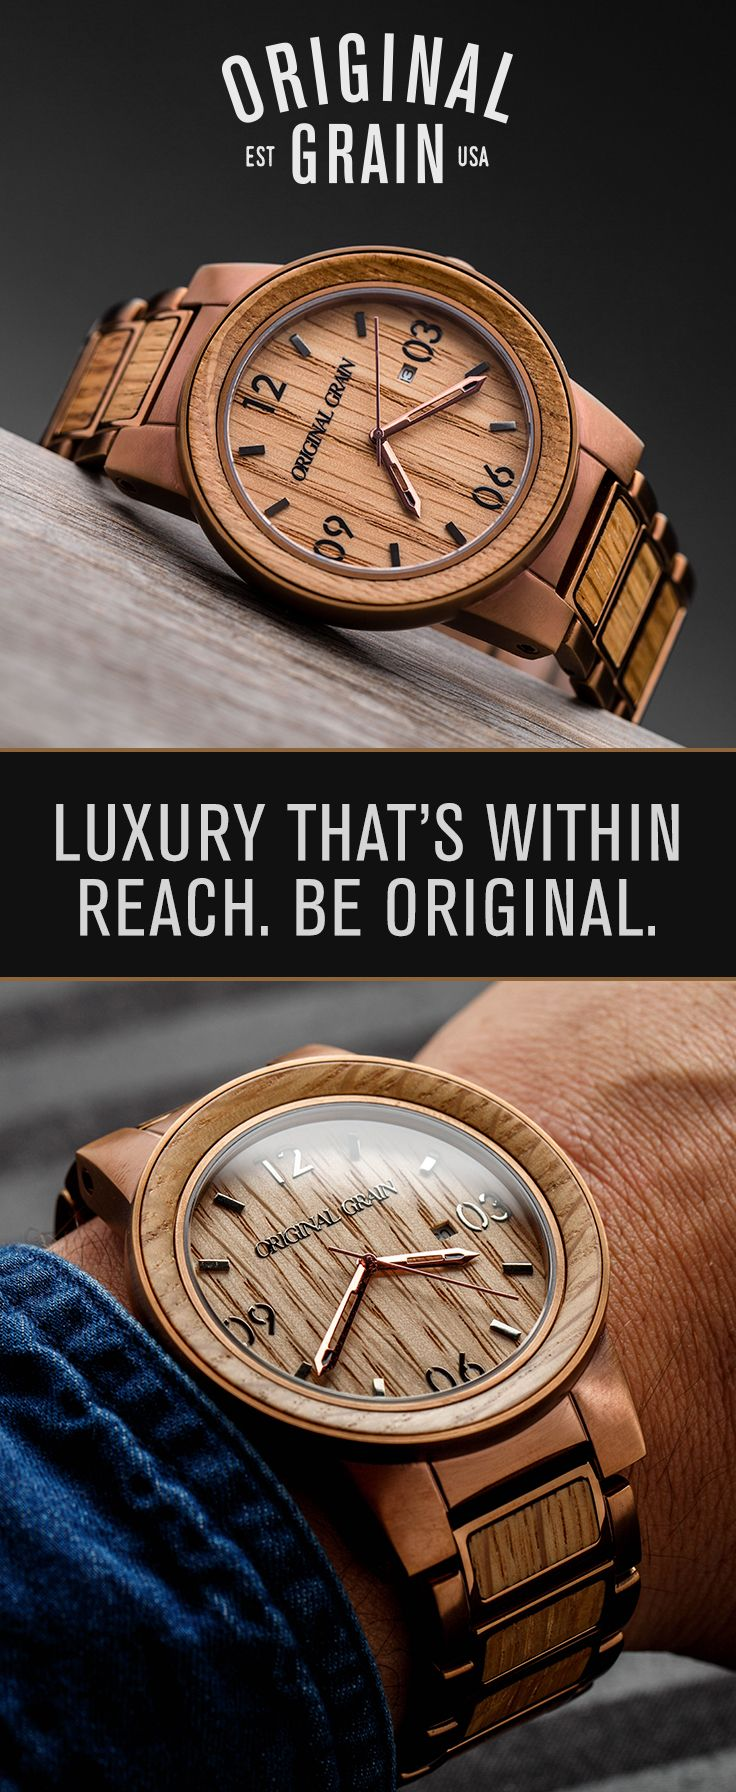 original stainless wrist grain com gift set barrel and dp wood whiskey collection amazon watch watches steel